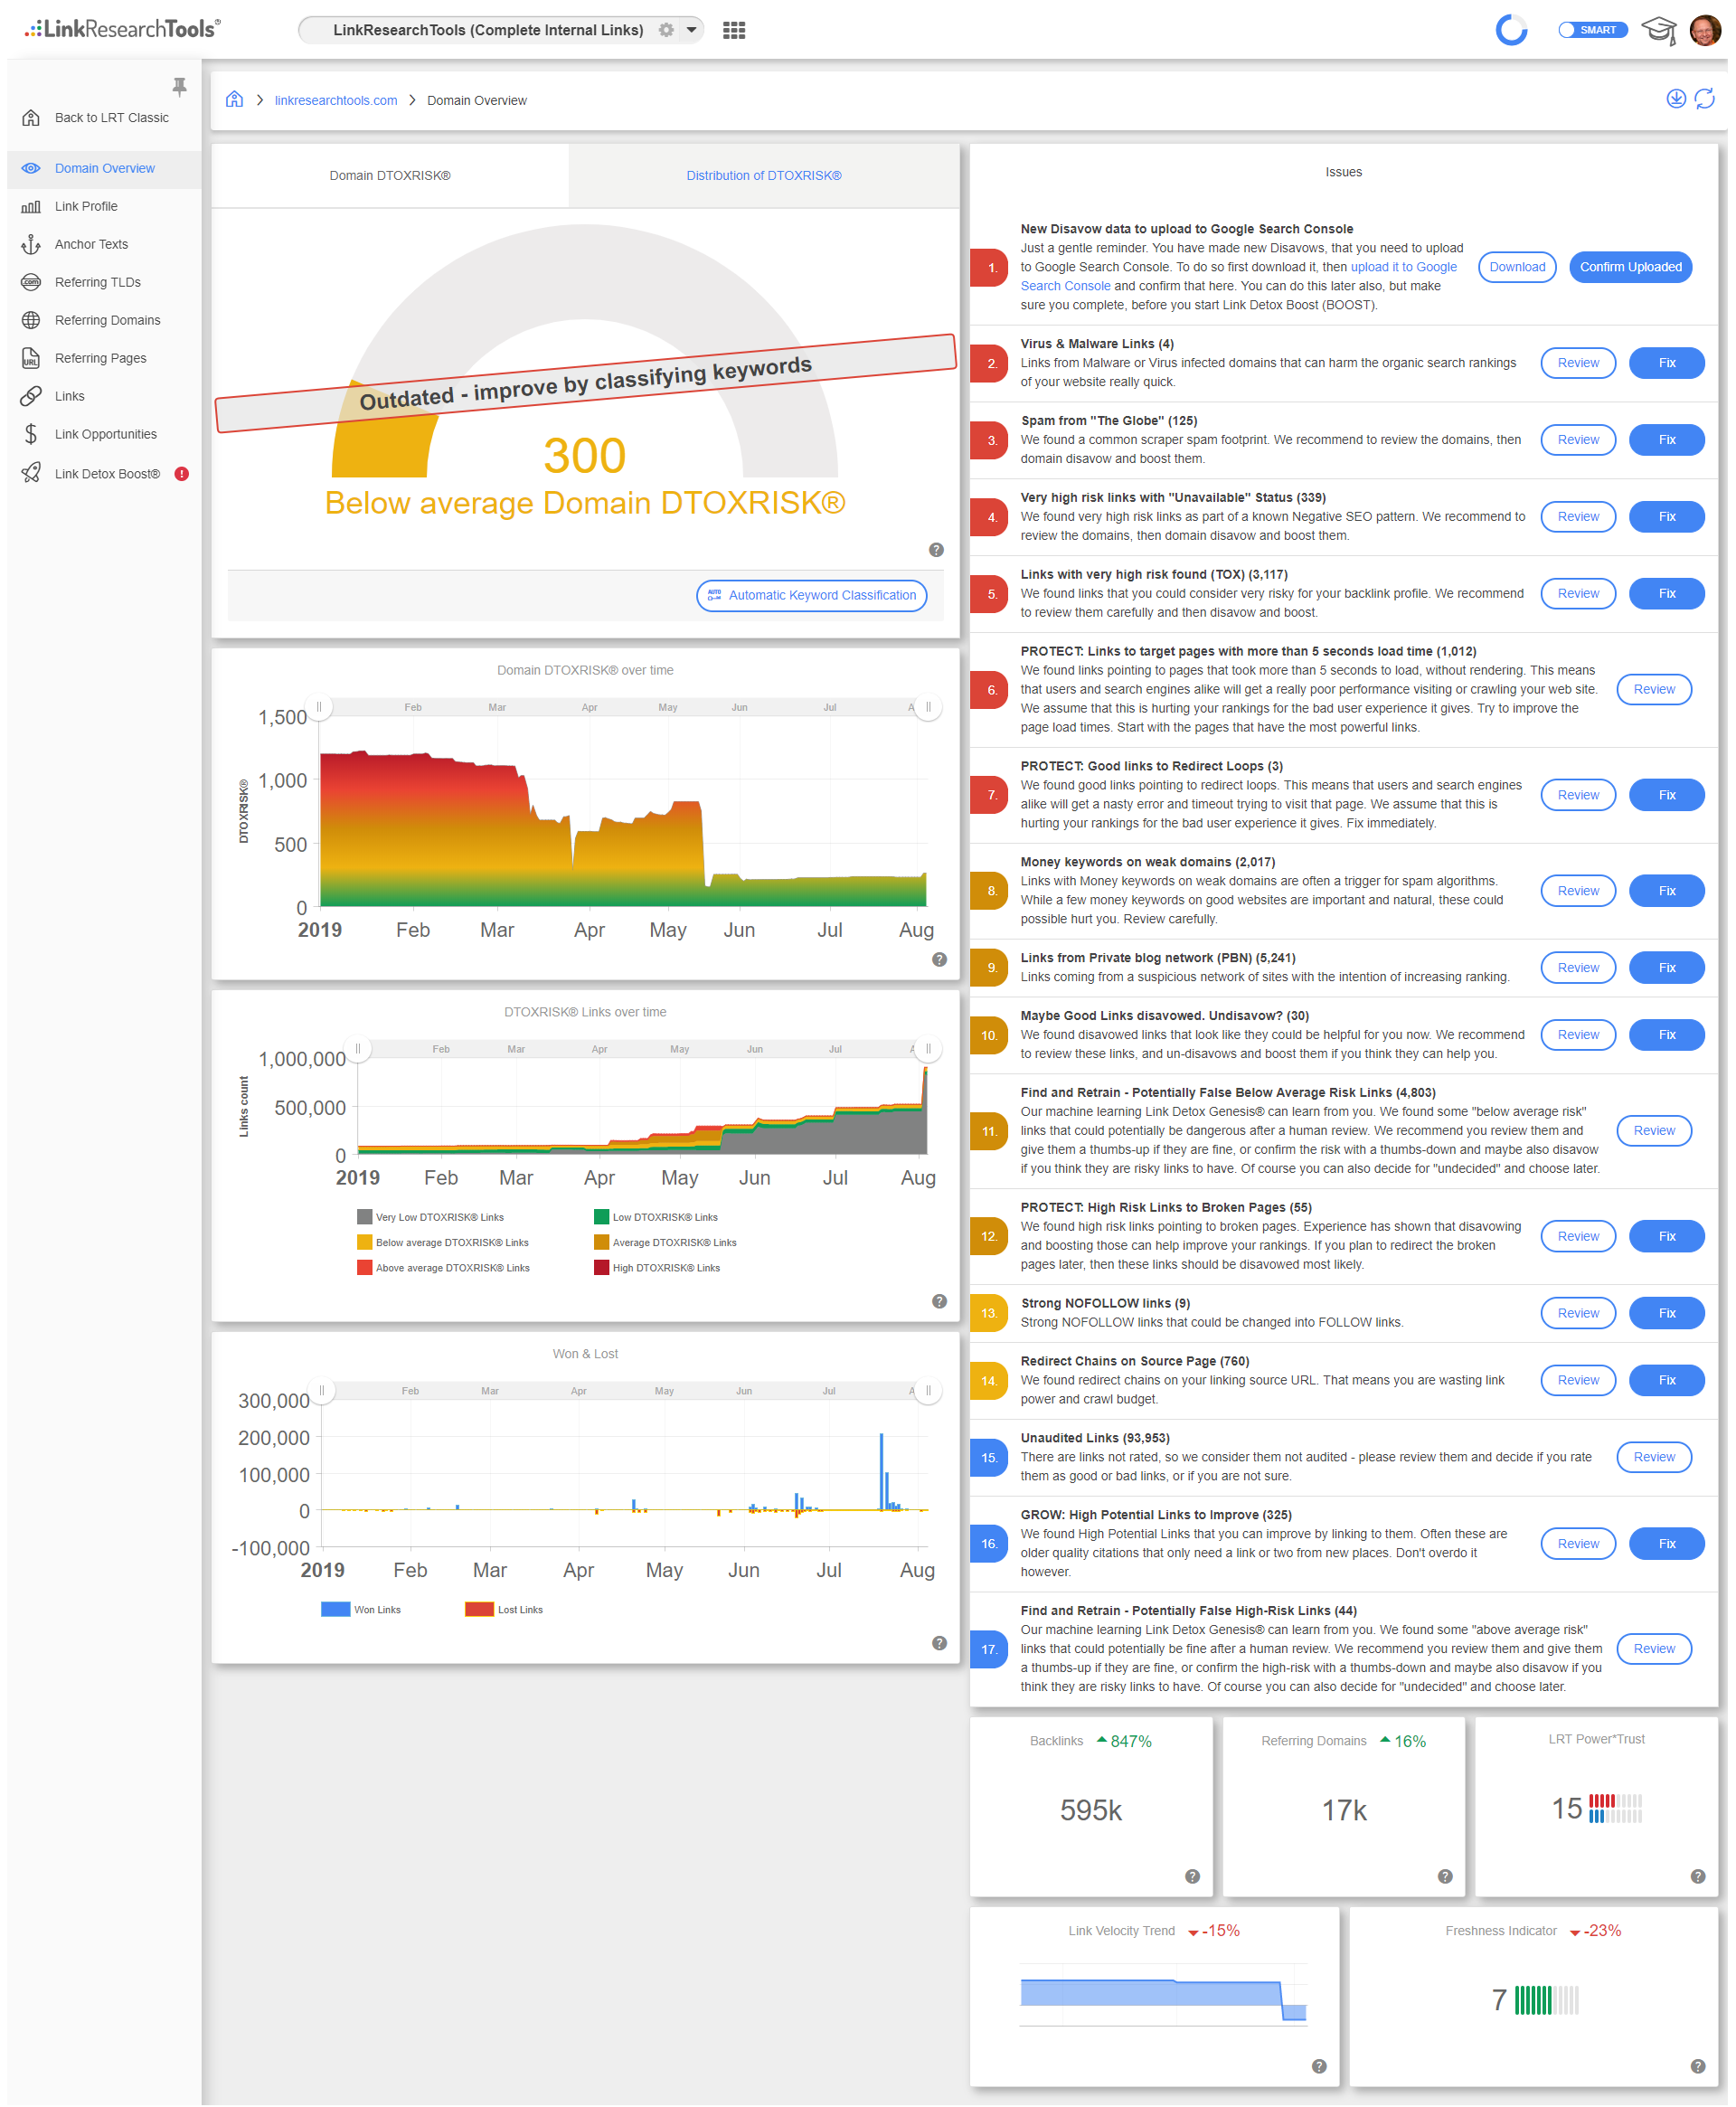 Typical dashboard and domain overview in LRT Smart